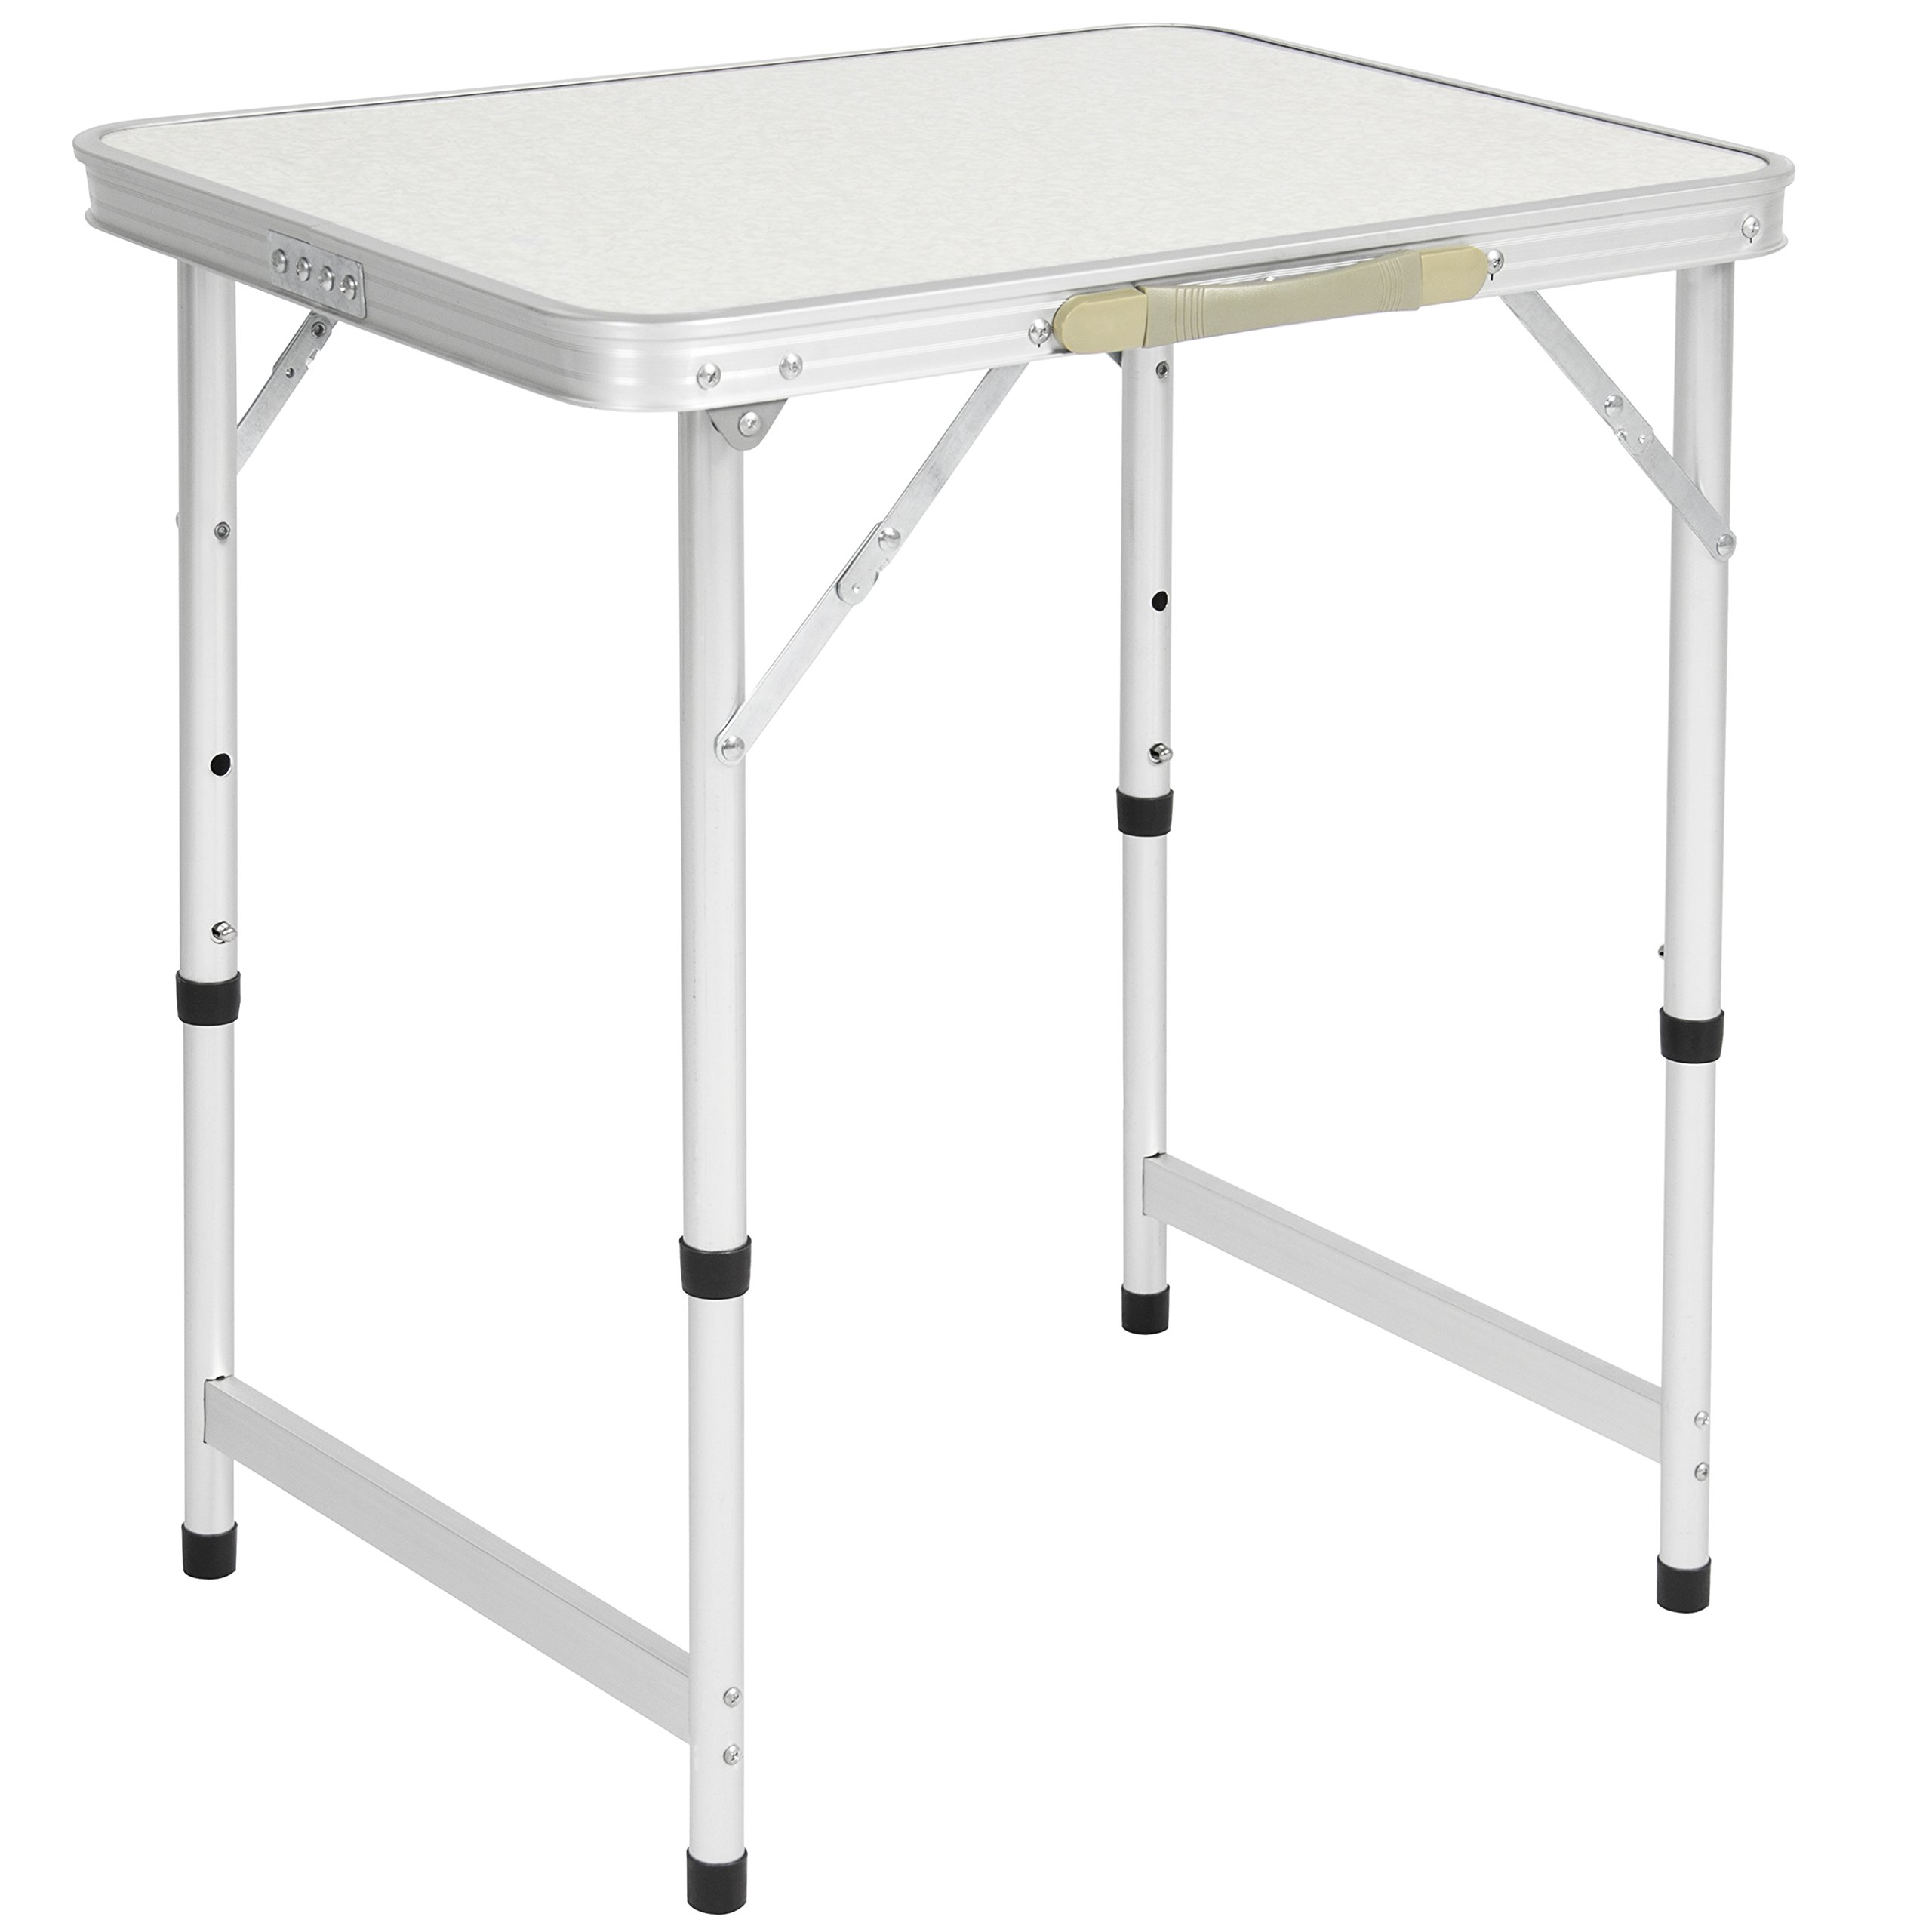 Best Choice Products Aluminum Camping Picnic Folding Table Portable Outdoor, 23.5'' x 17.5''